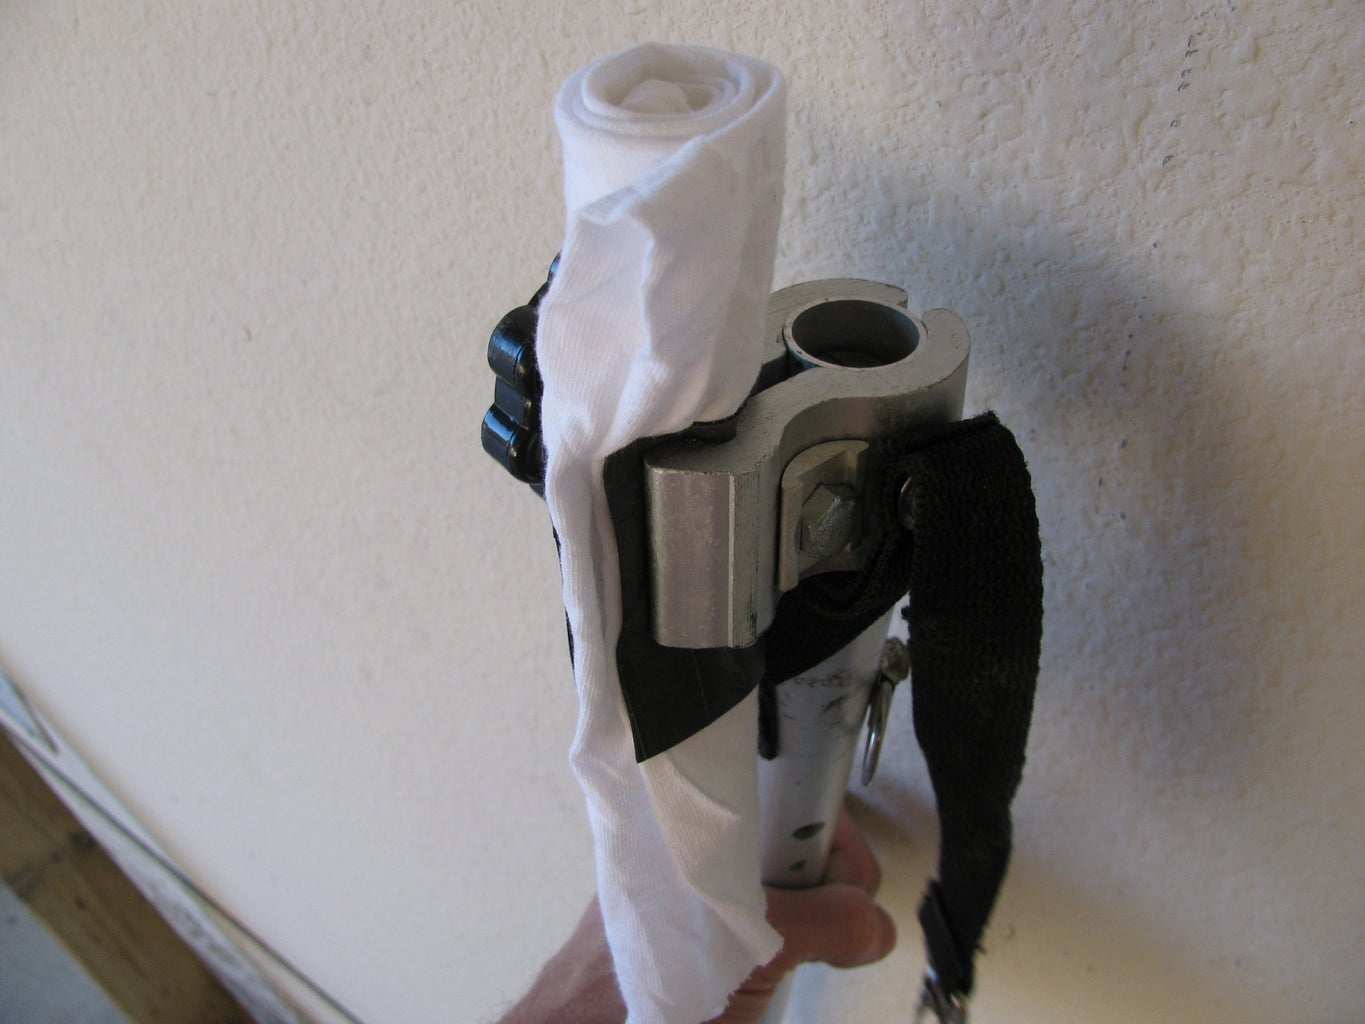 (optional) Pad the Pull-arm Clamp